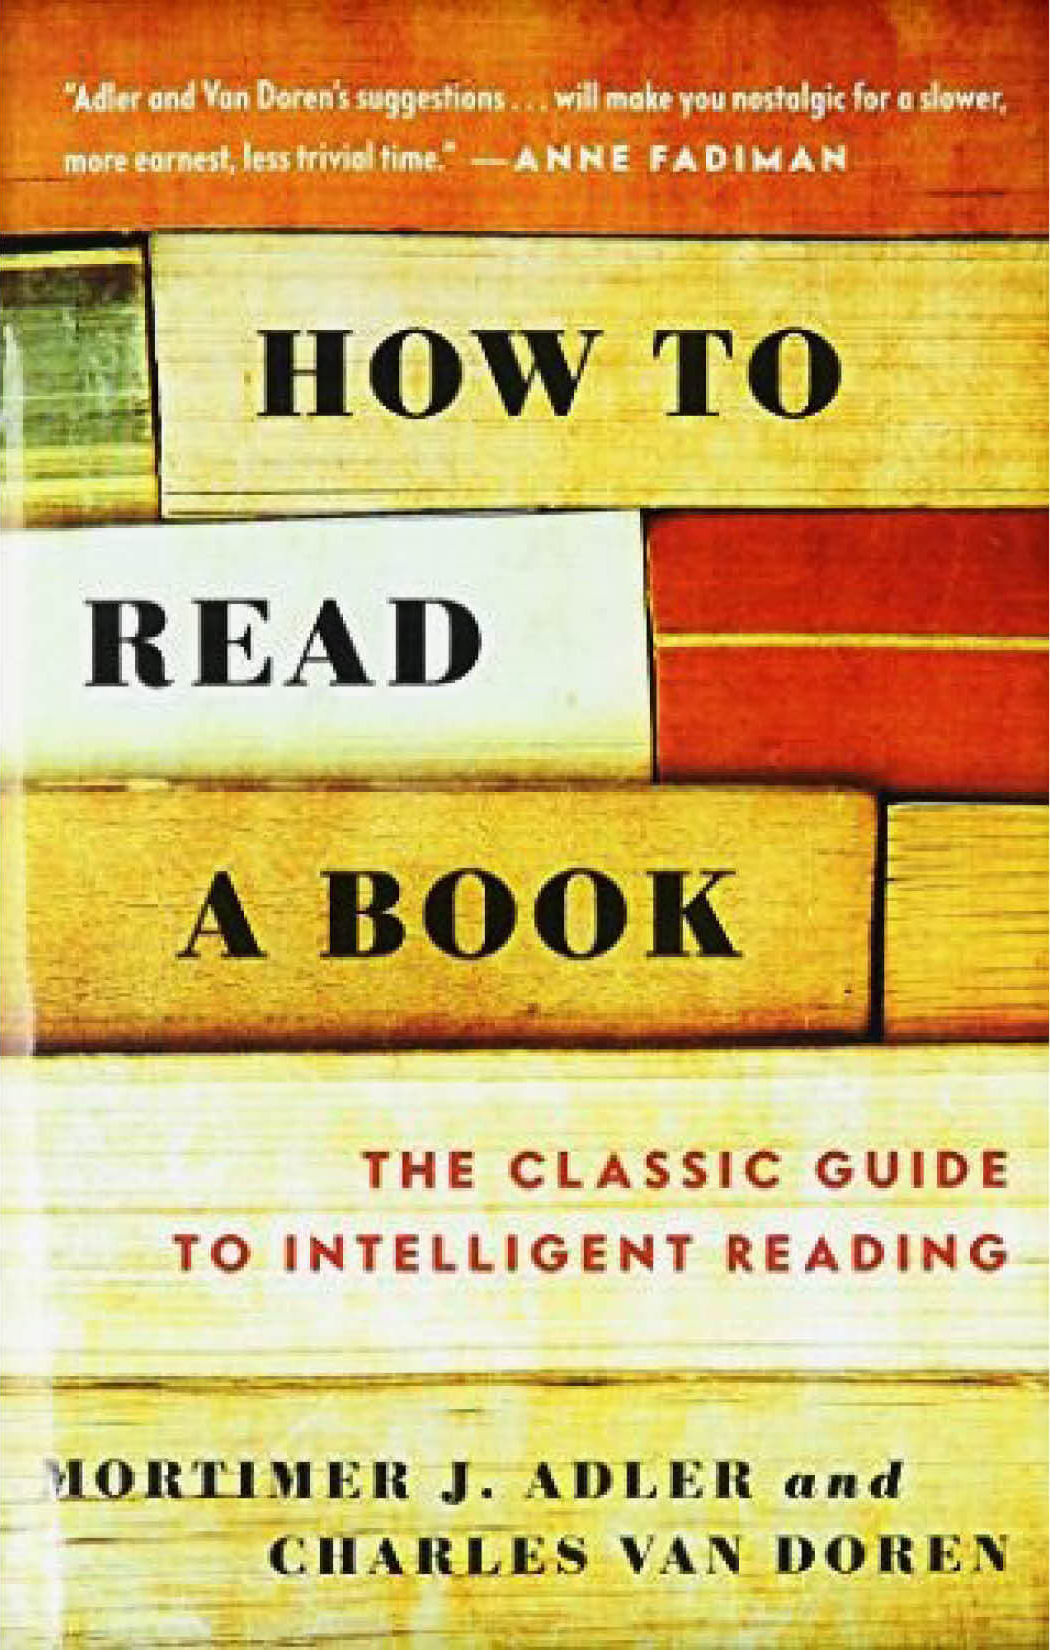 How To Read A Book by Mortimer Adler and Charles Van Doren